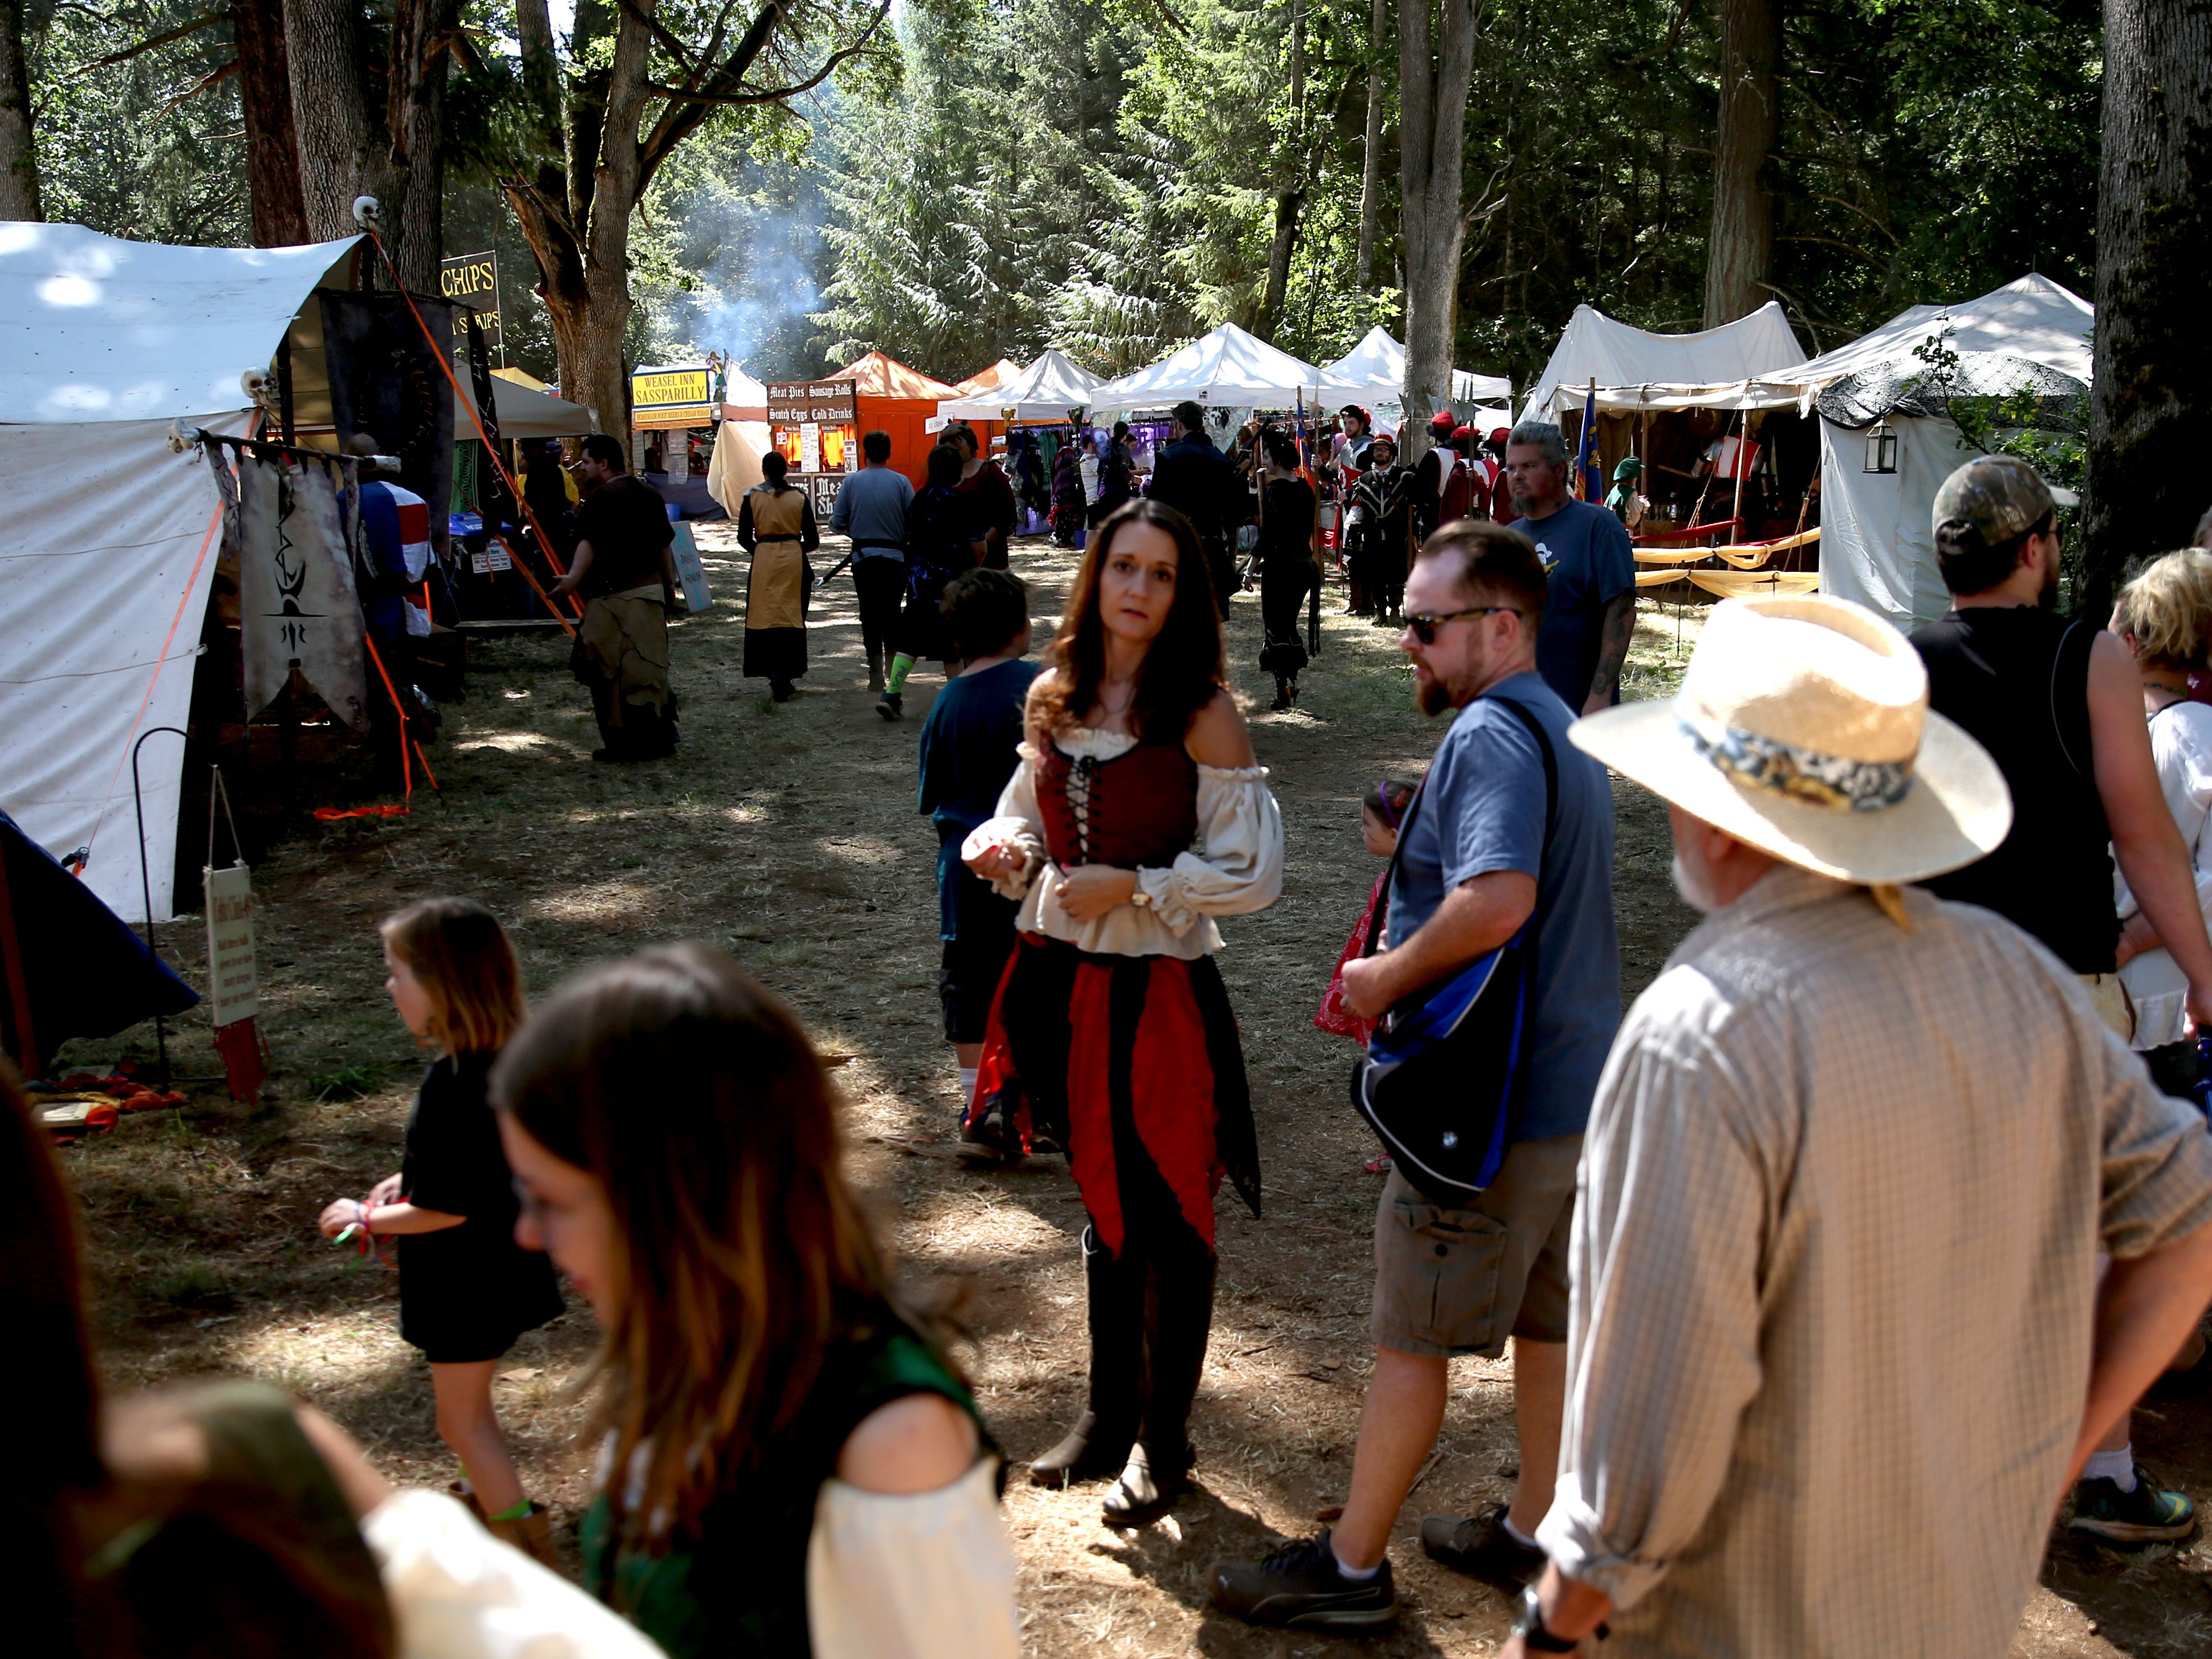 The Canterbury Renaissance Faire near Silverton on Saturday, July 21, 2018. The faire continues July 22, 28 and 29.